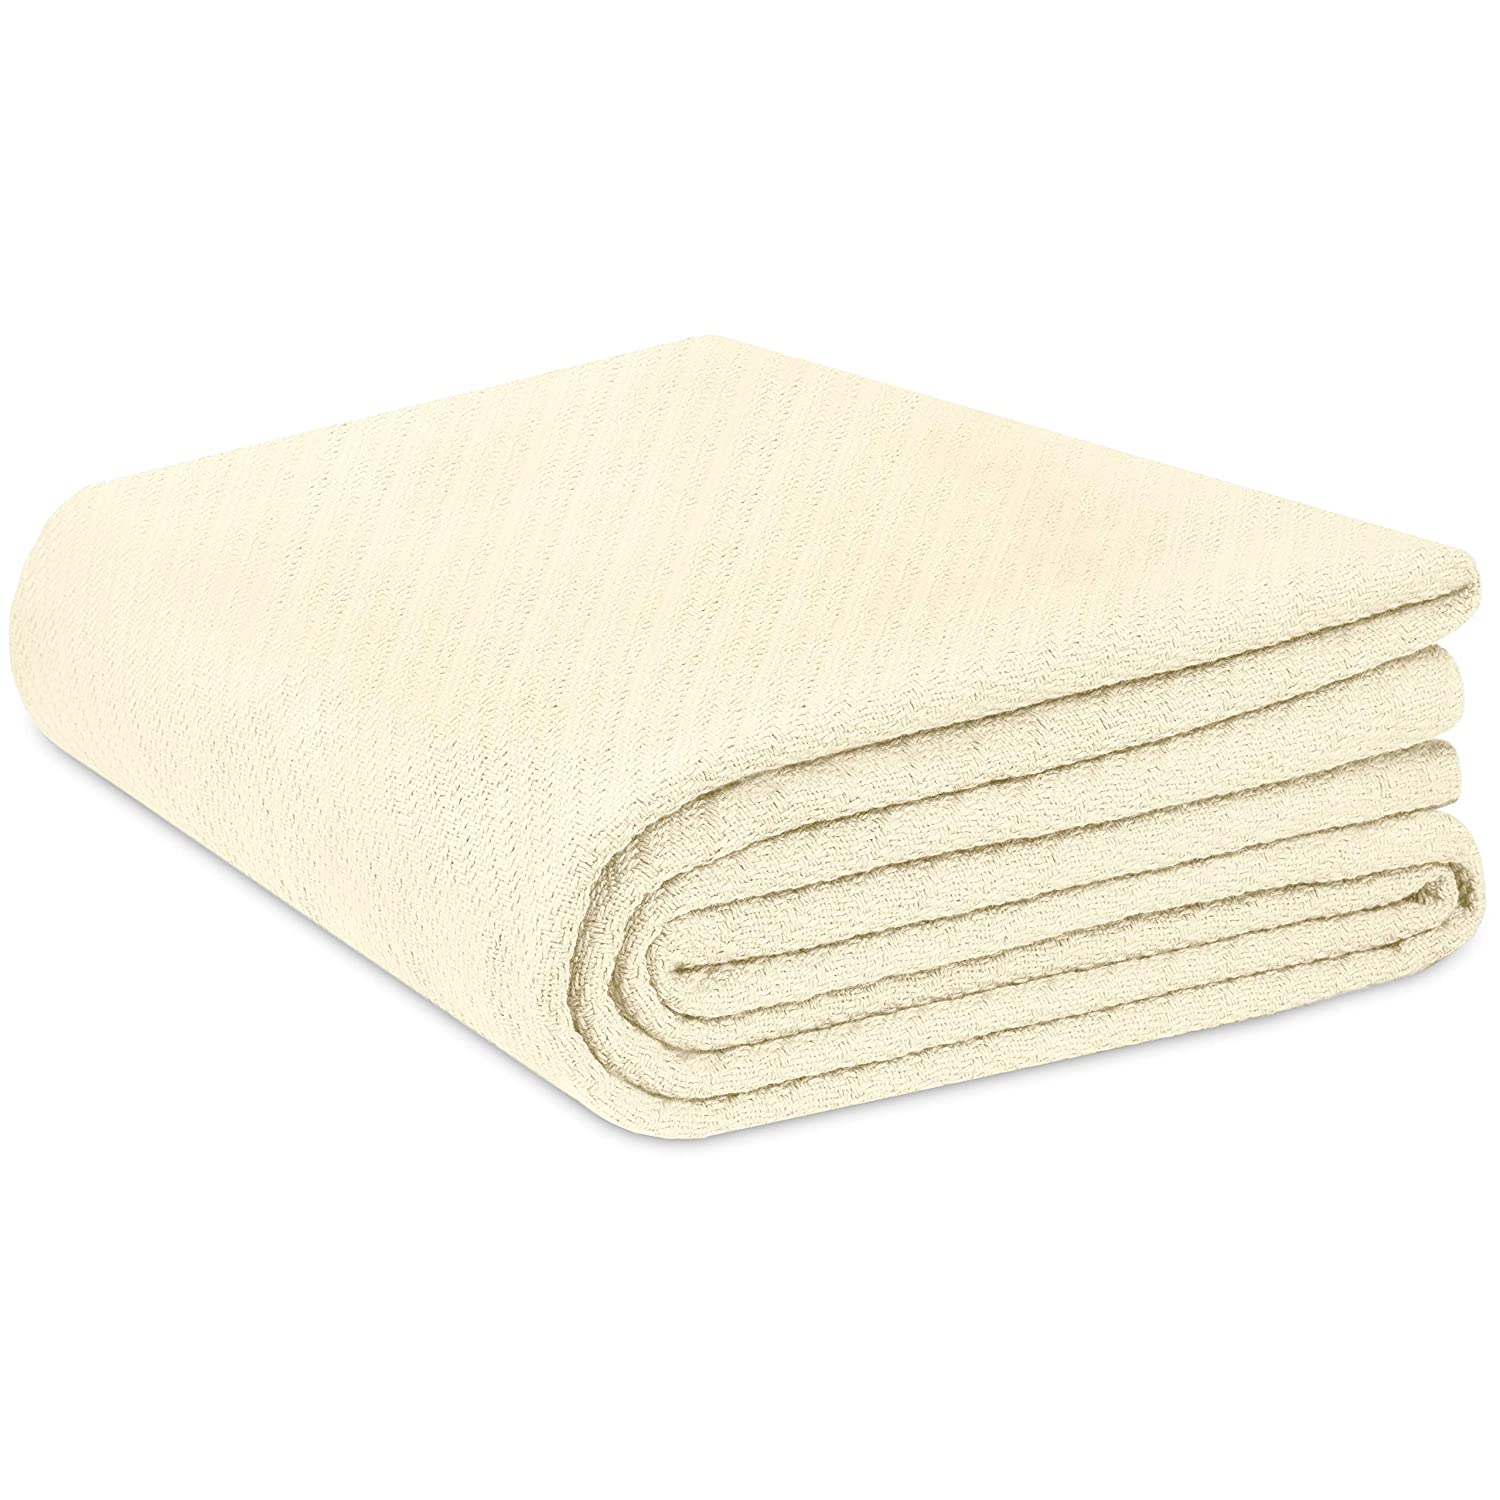 COTTON CRAFT - 100% Soft Premium Cotton Thermal Blanket - King Ivory - Snuggle in These Super Soft Cozy Cotton Blankets - Perfect for Layering Any Bed - Provides Comfort and Warmth for Years